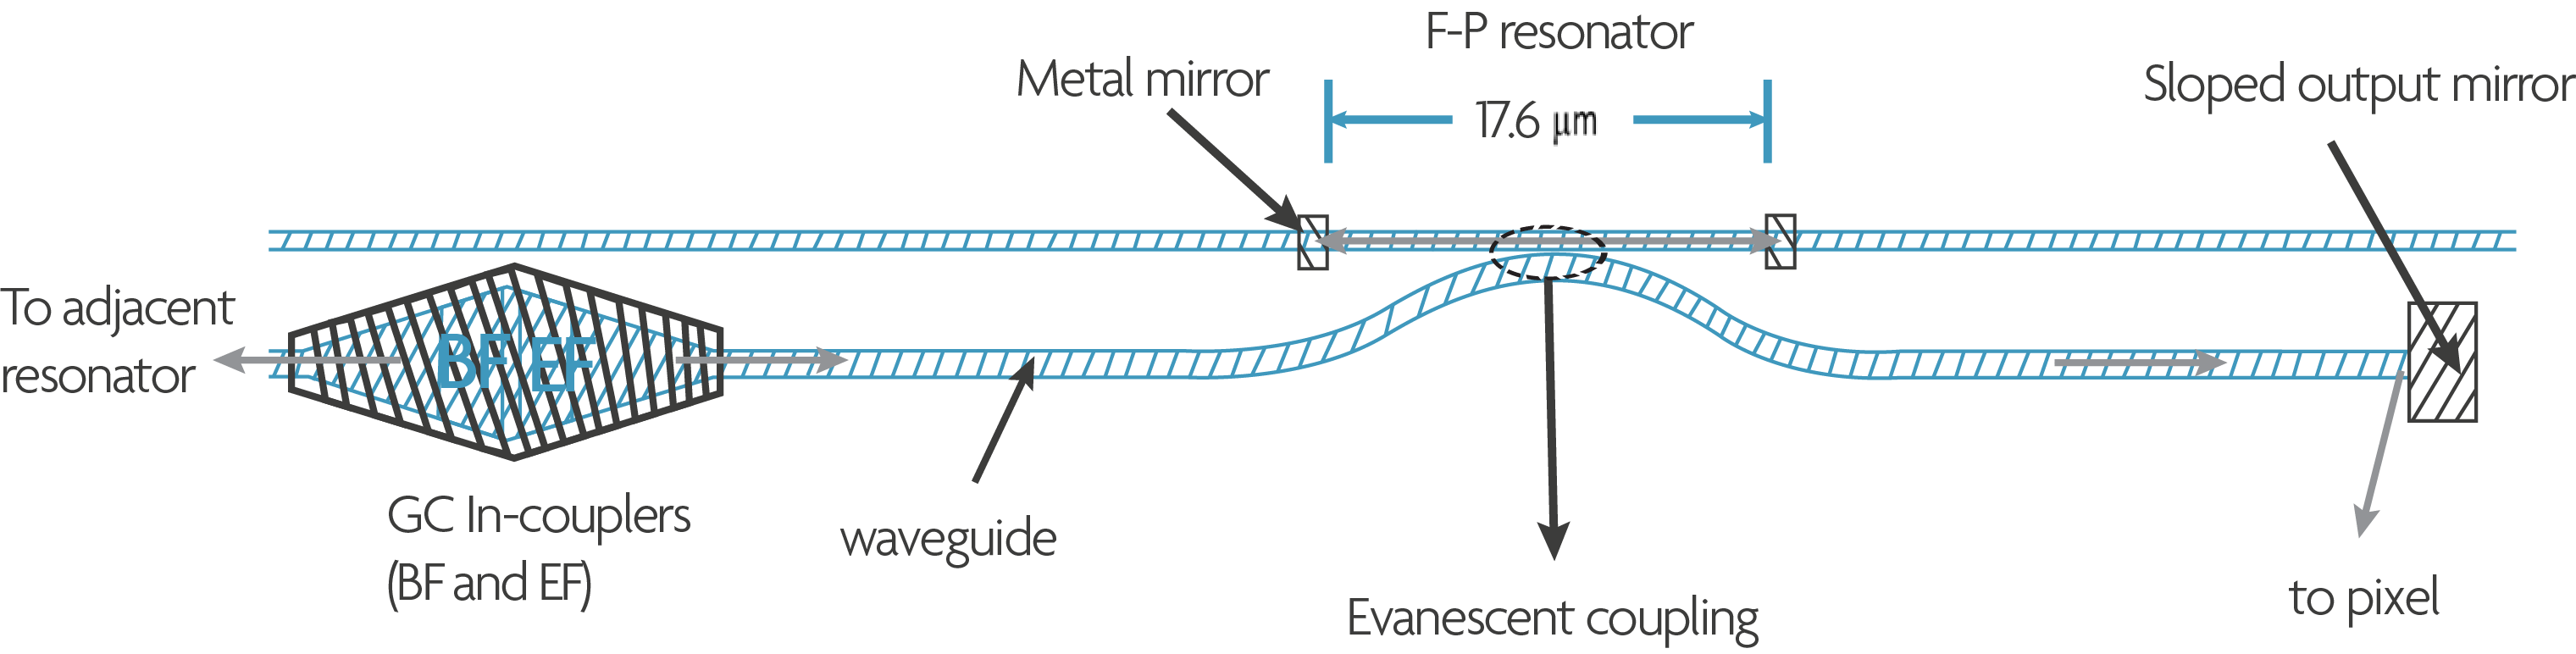 Part of the spectrometer chip layout, showing an evanescently coupled Fabry-Perot resonator (17.6µm long) together with the grating in-coupler(s) and the sloped output mirror for coupling the light to the pixels.